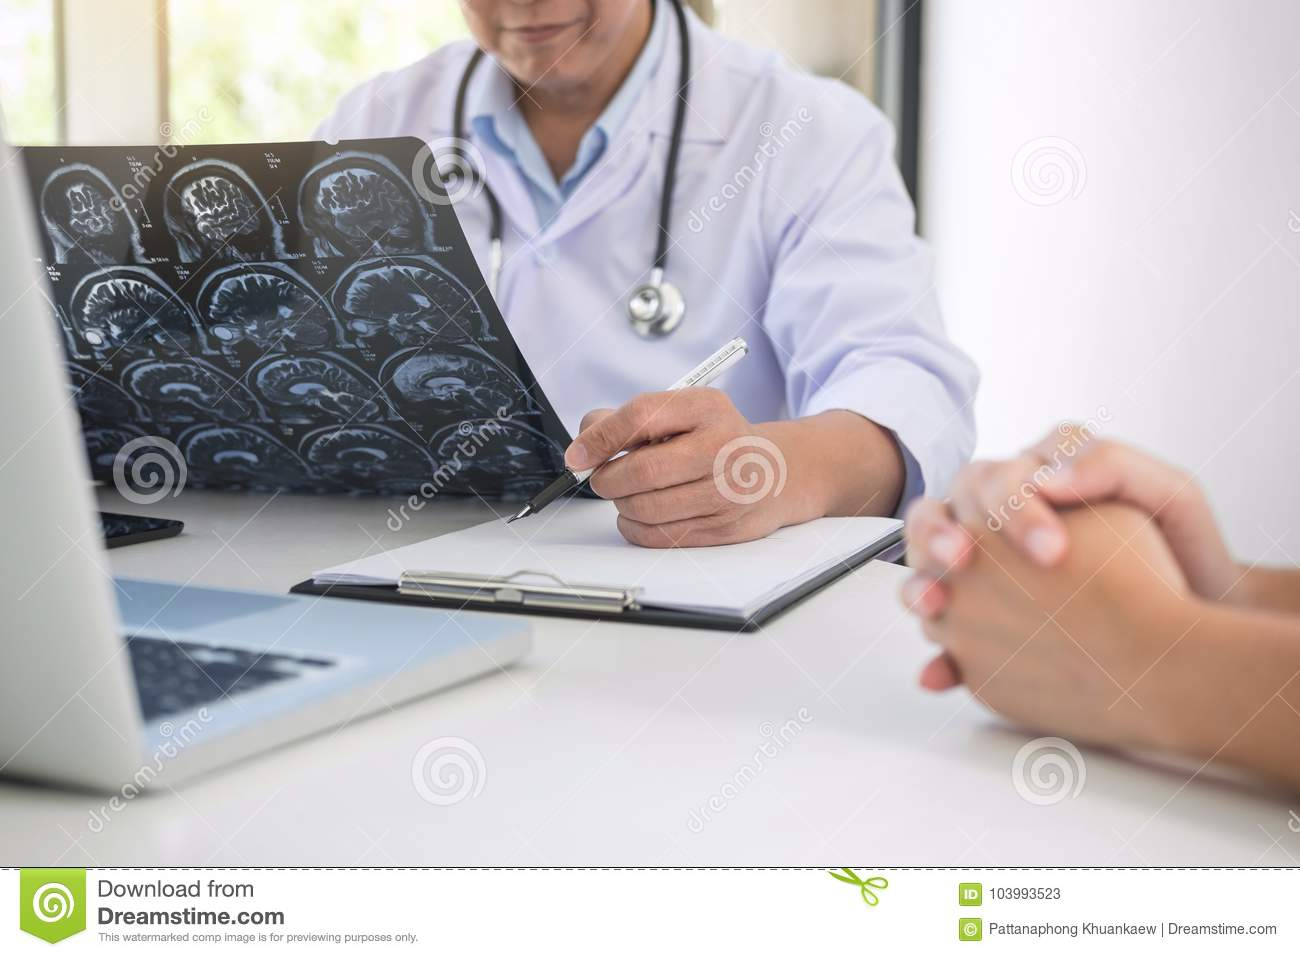 Professor Doctor report and recommend a method with patient treatment, results on brain x-ray film About the problem